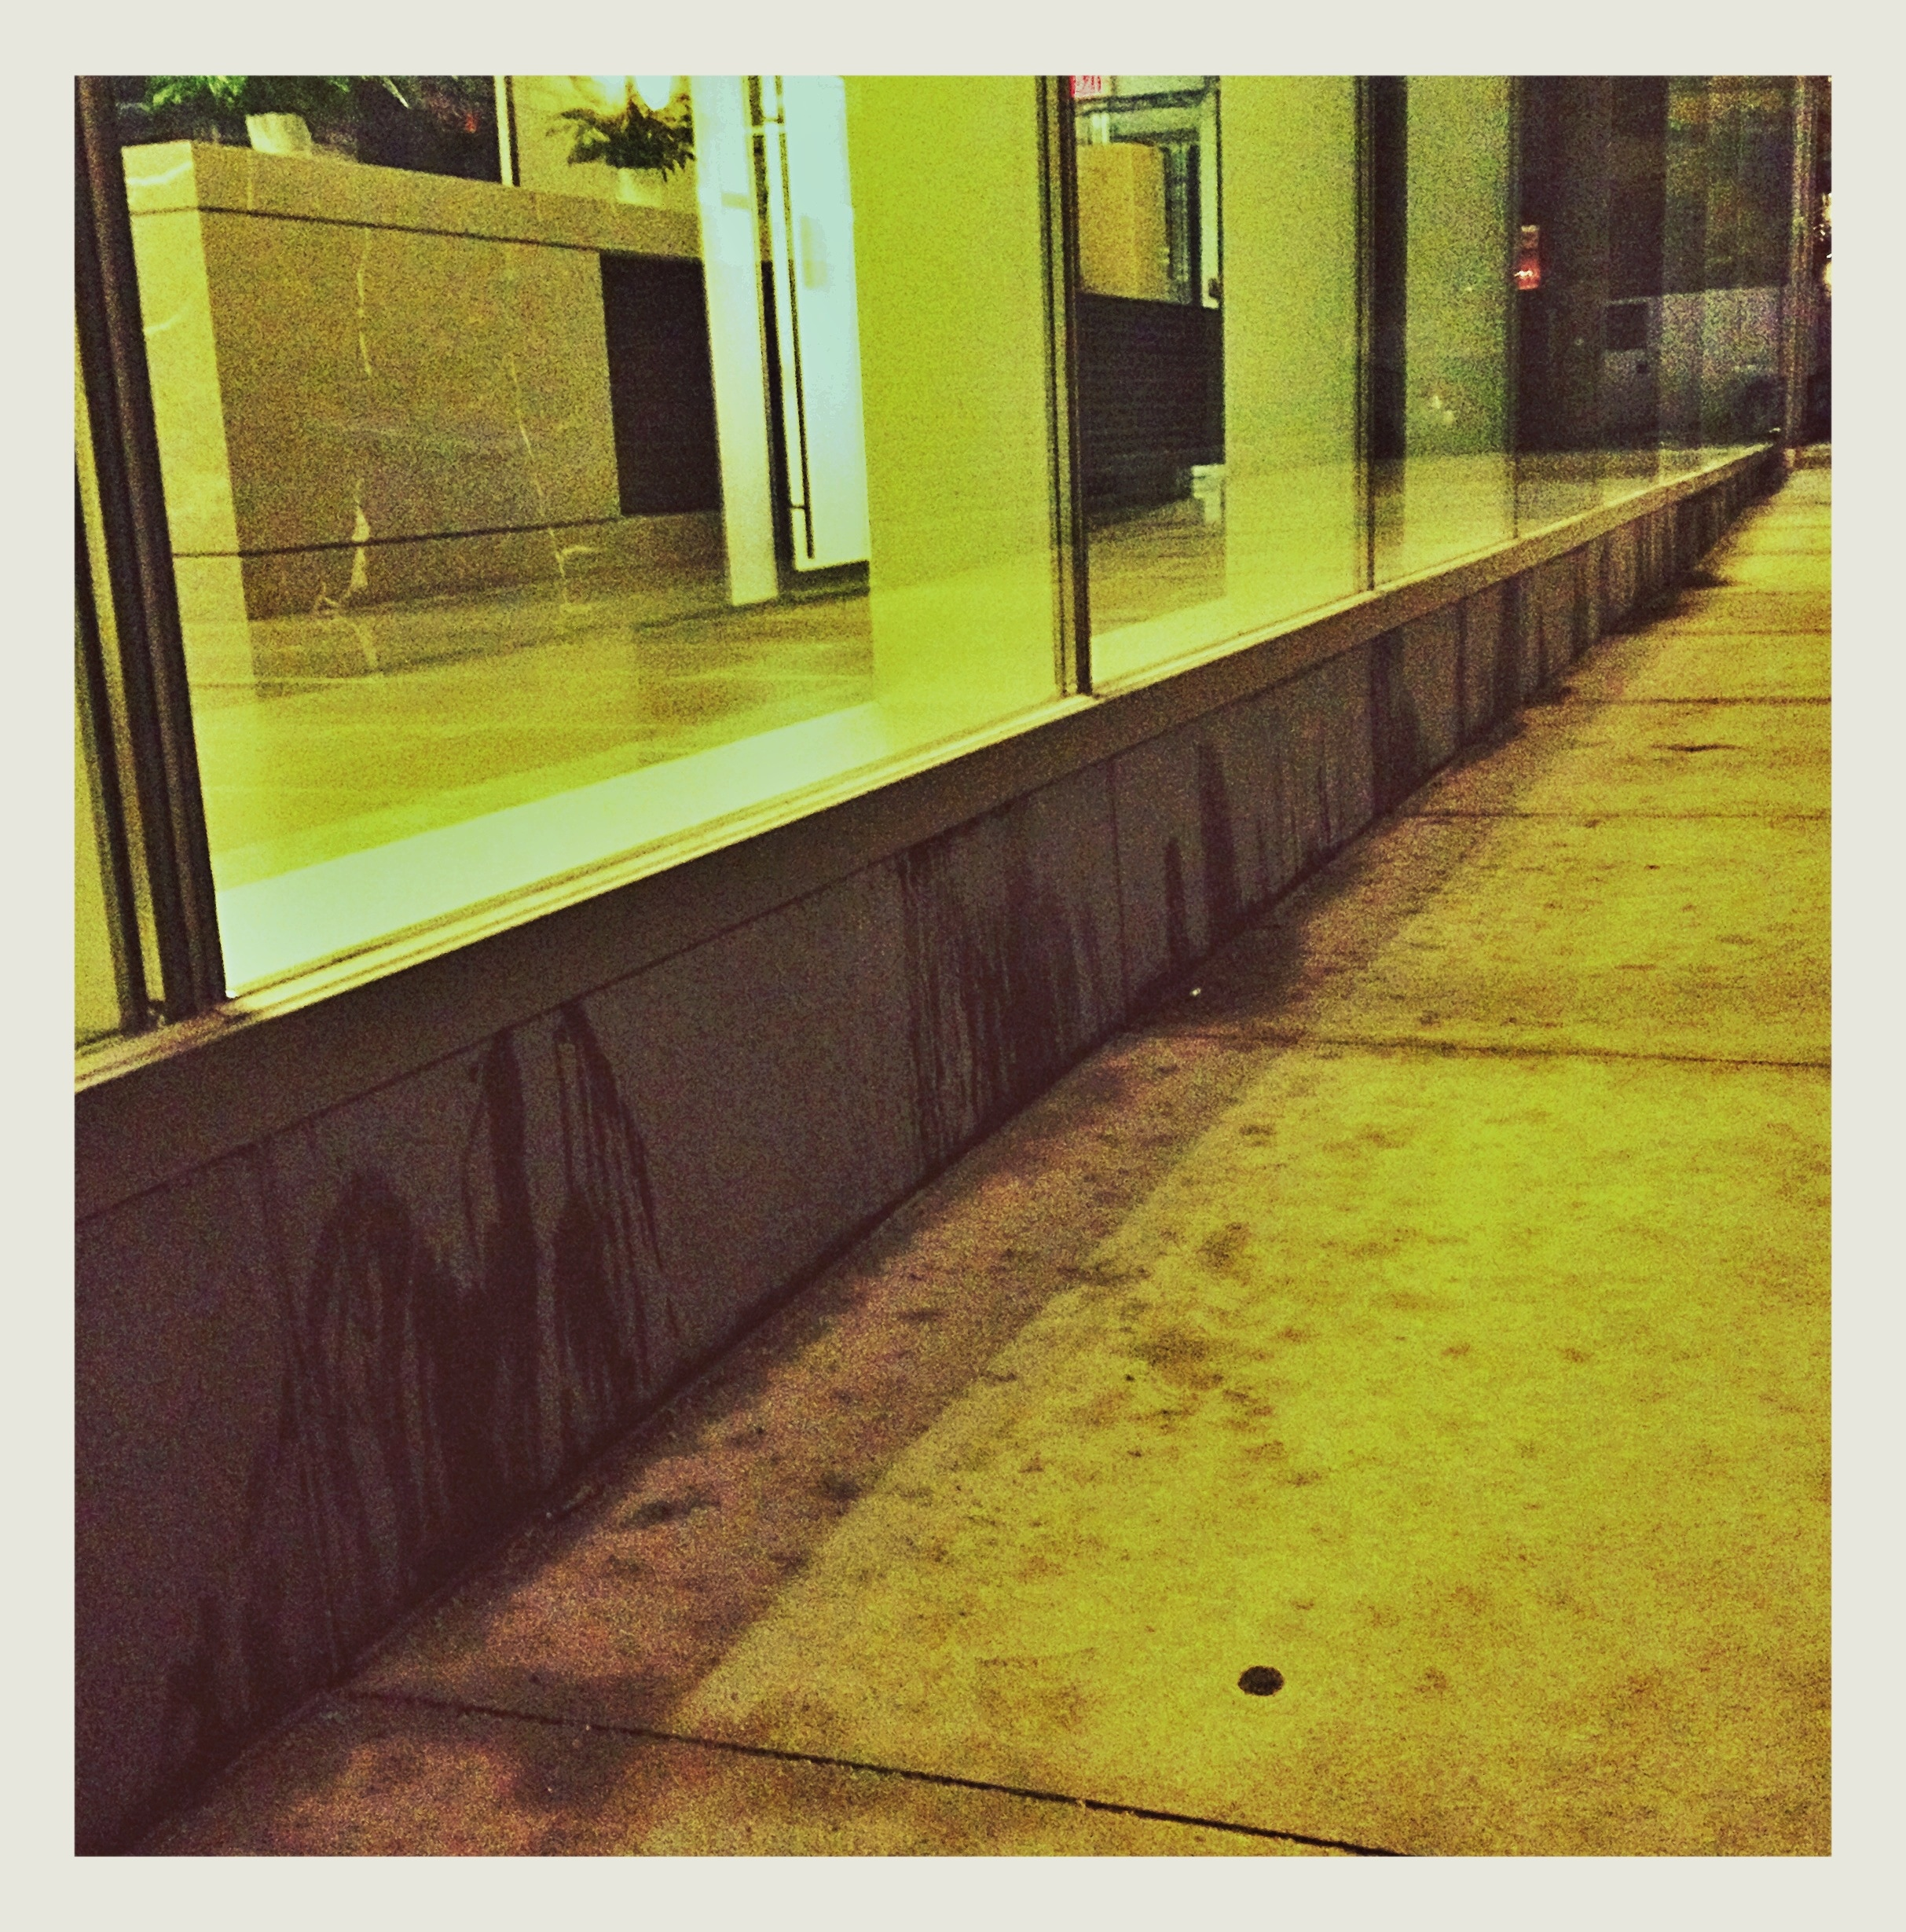 """Piss-Pot"" - Desperate dogs or lazy owners leave a urine stained walkway @ThompsonToronto Hotel & Suites, Toronto"